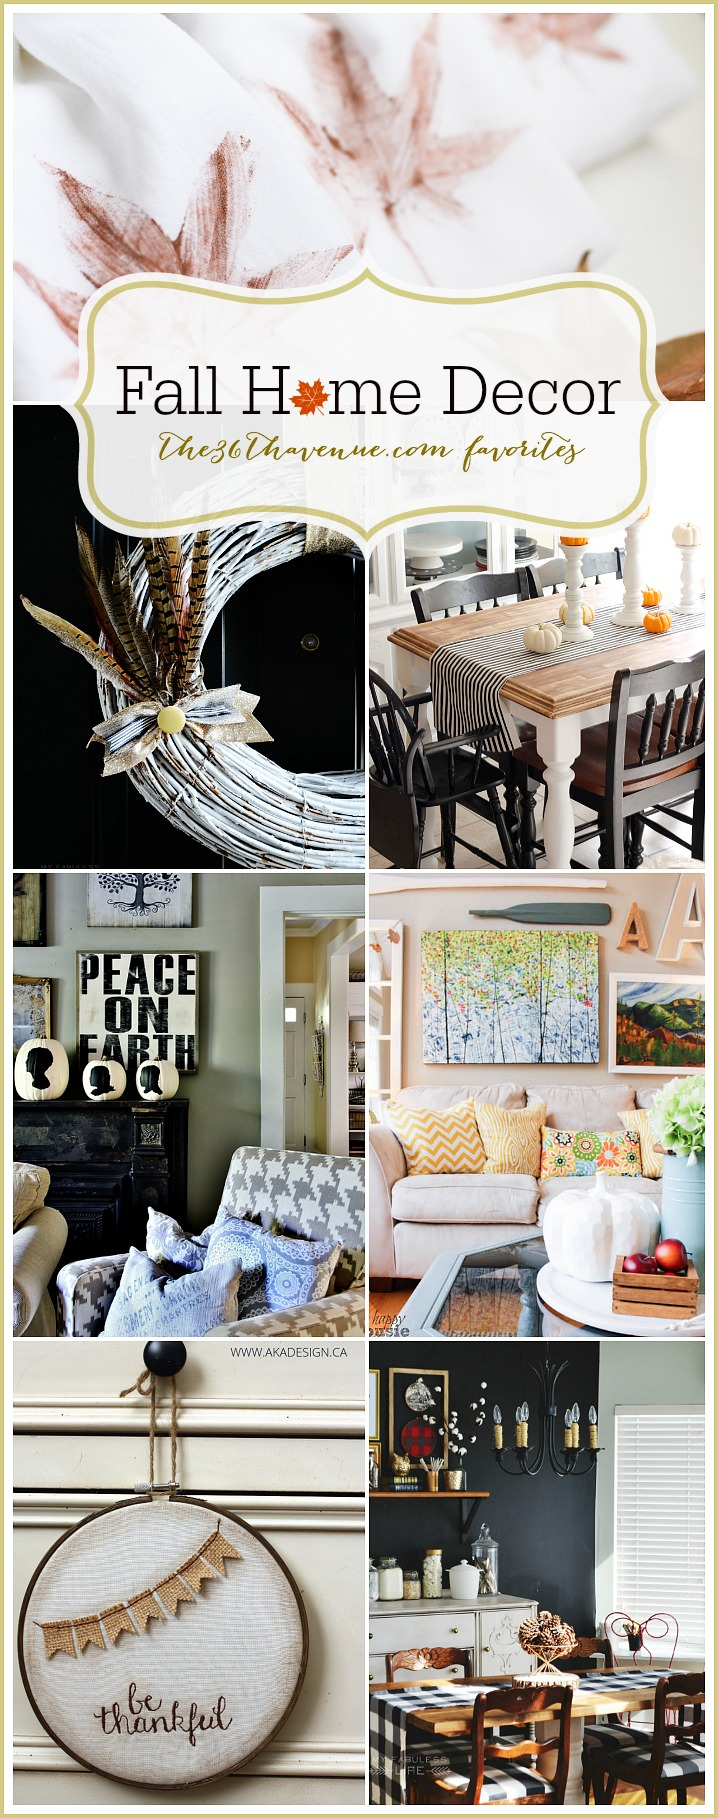 Home Decor - DIY Fall Home Decor Ideas at the36thavenue.com